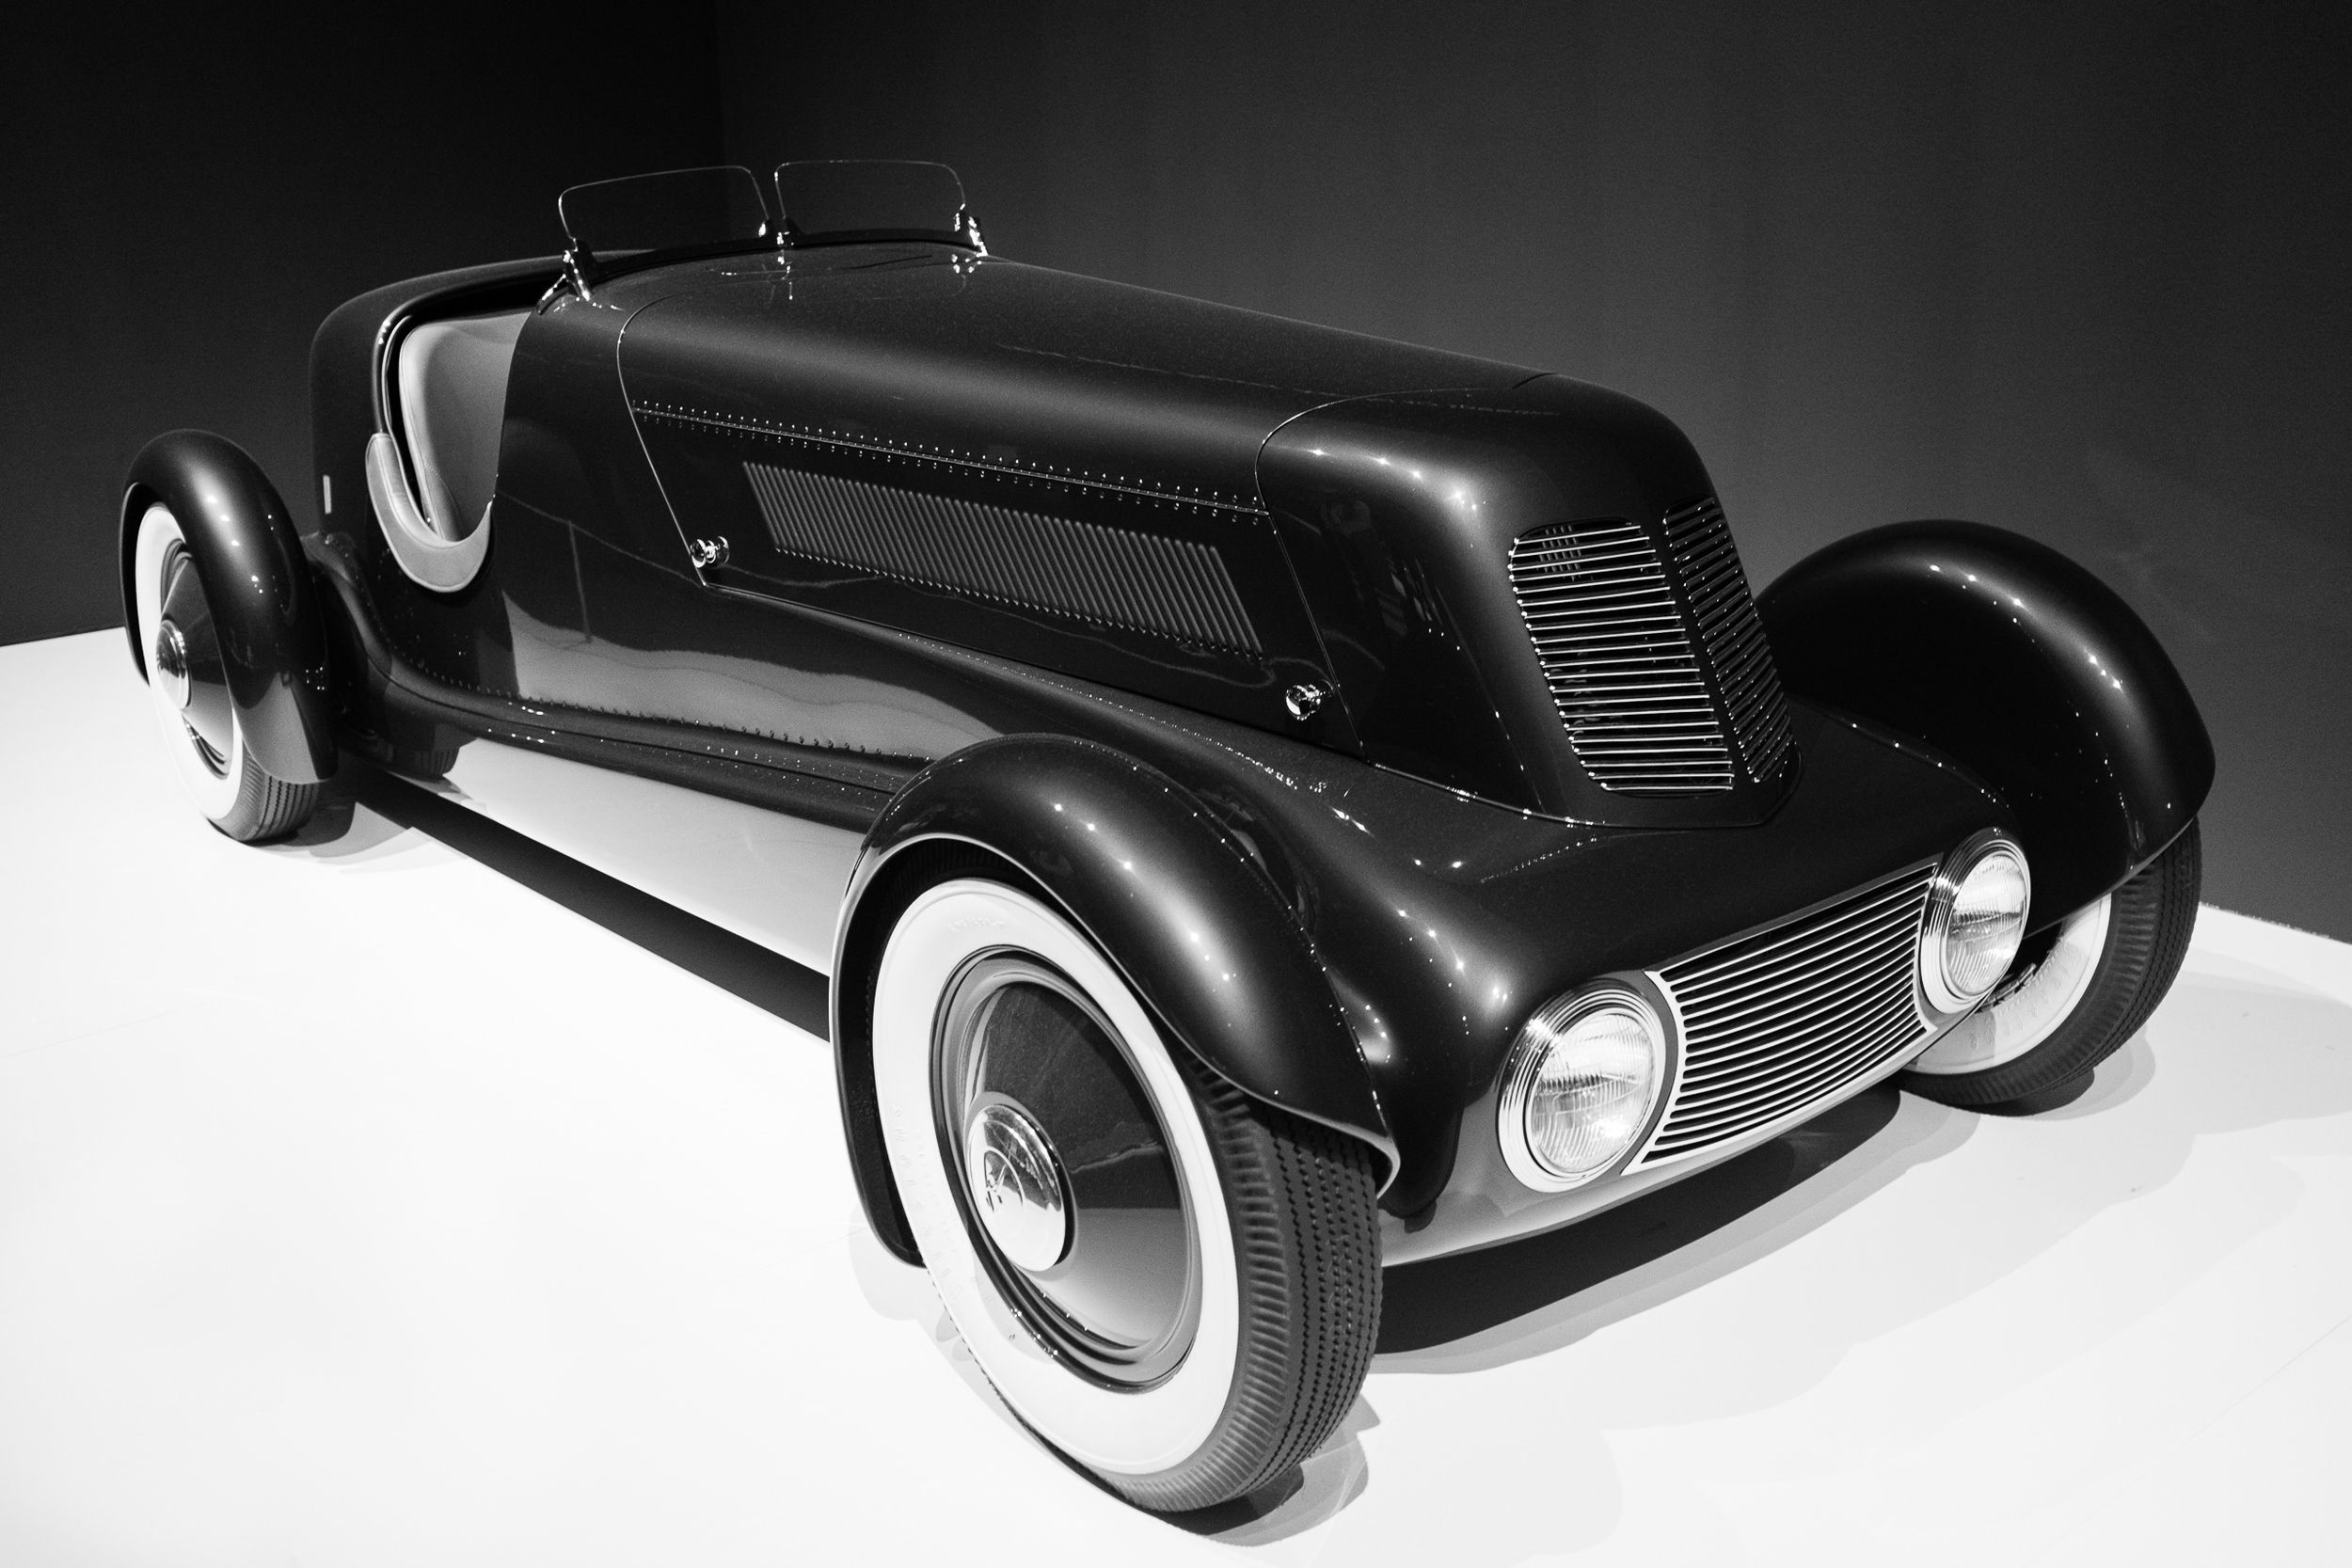 Edsel Ford's Model 40 Speedster